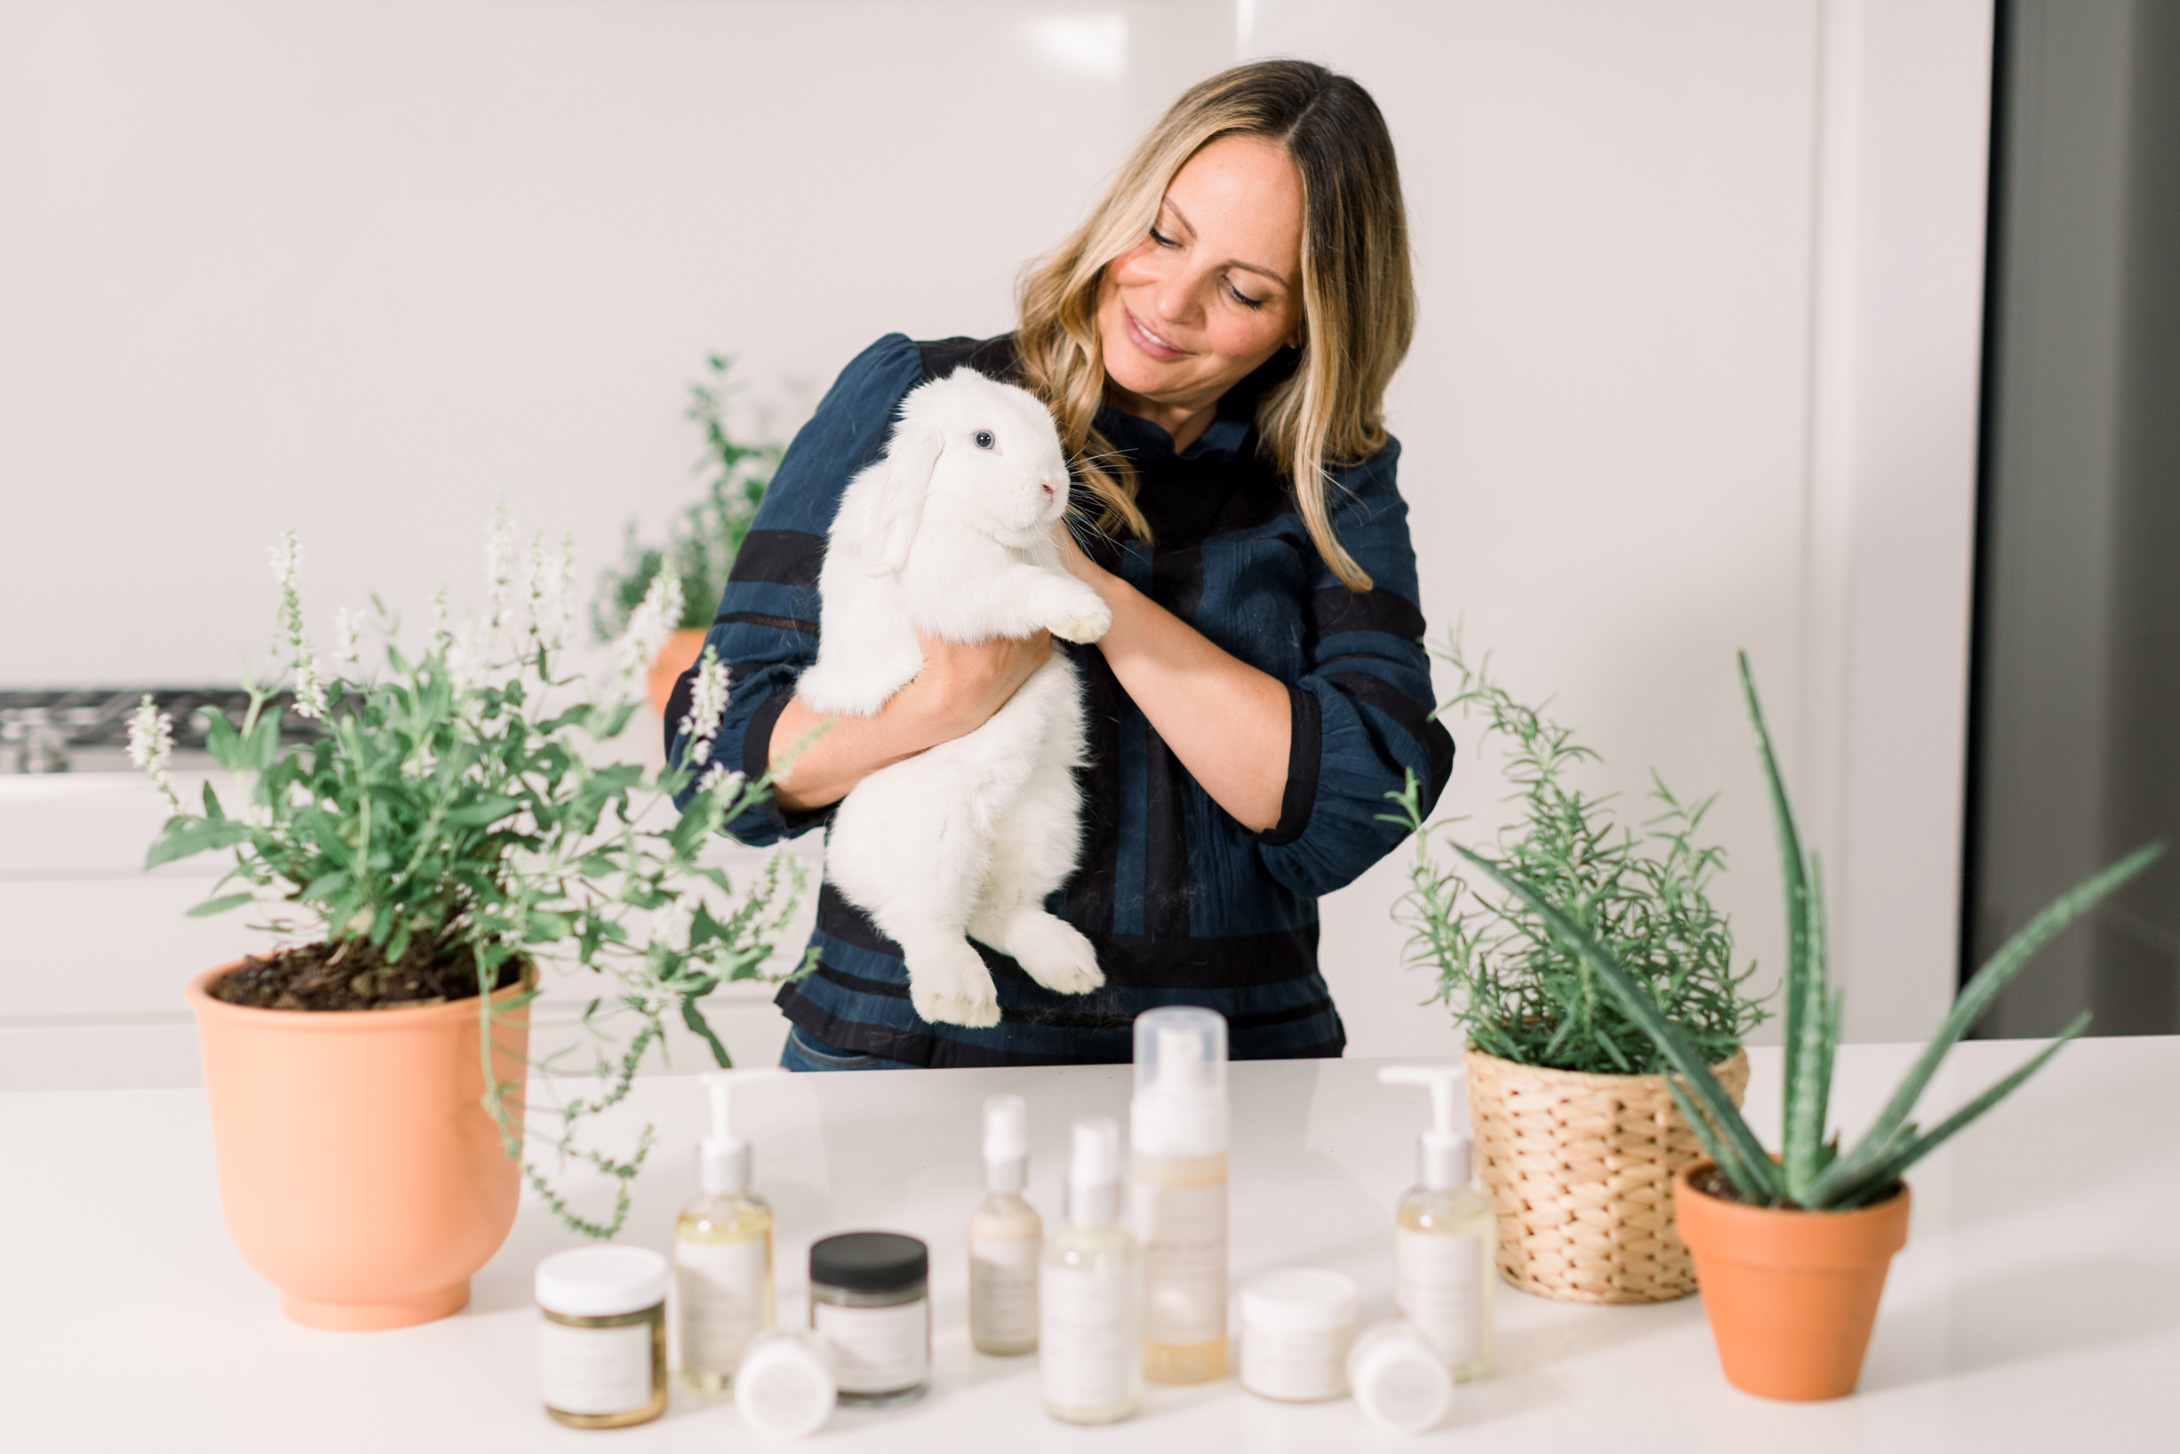 Sara D'Amelio and her natural green beauty routine.